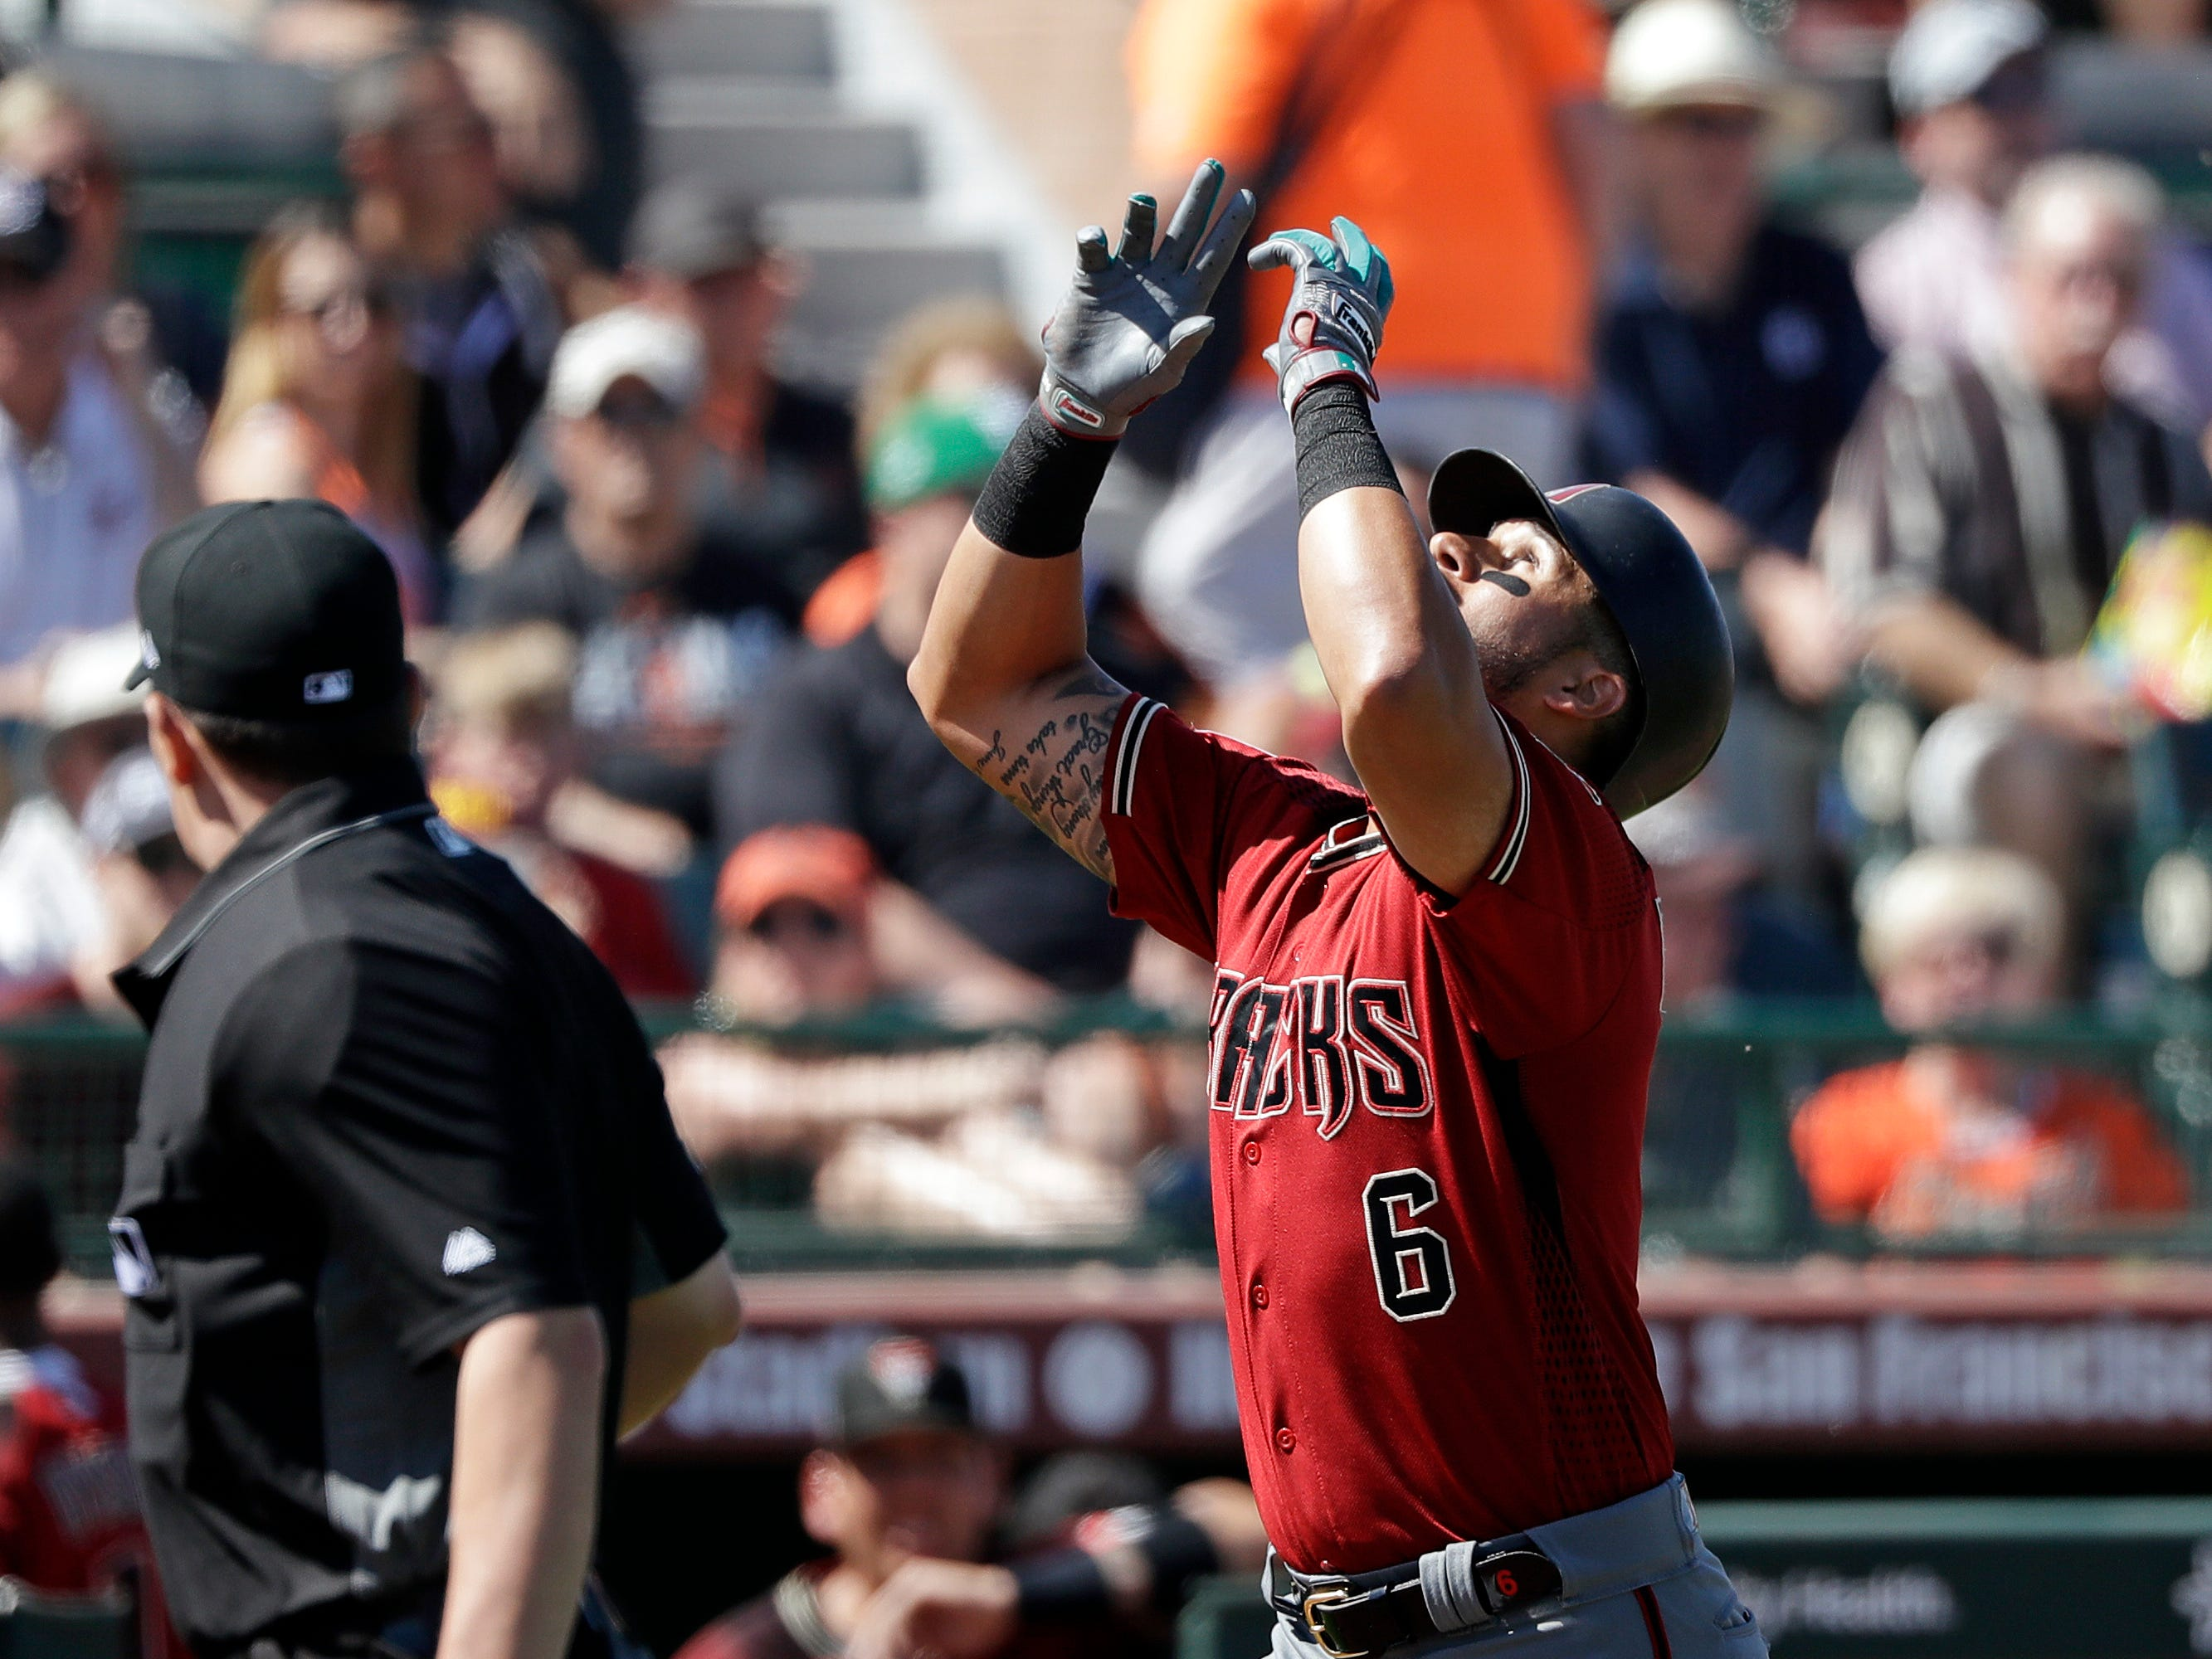 Arizona Diamondbacks' David Peralta gestures skyward as he heads home on his solo home run against the San Francisco Giants in the third inning of a spring training baseball game Saturday, March 23, 2019, in Scottsdale, Ariz.